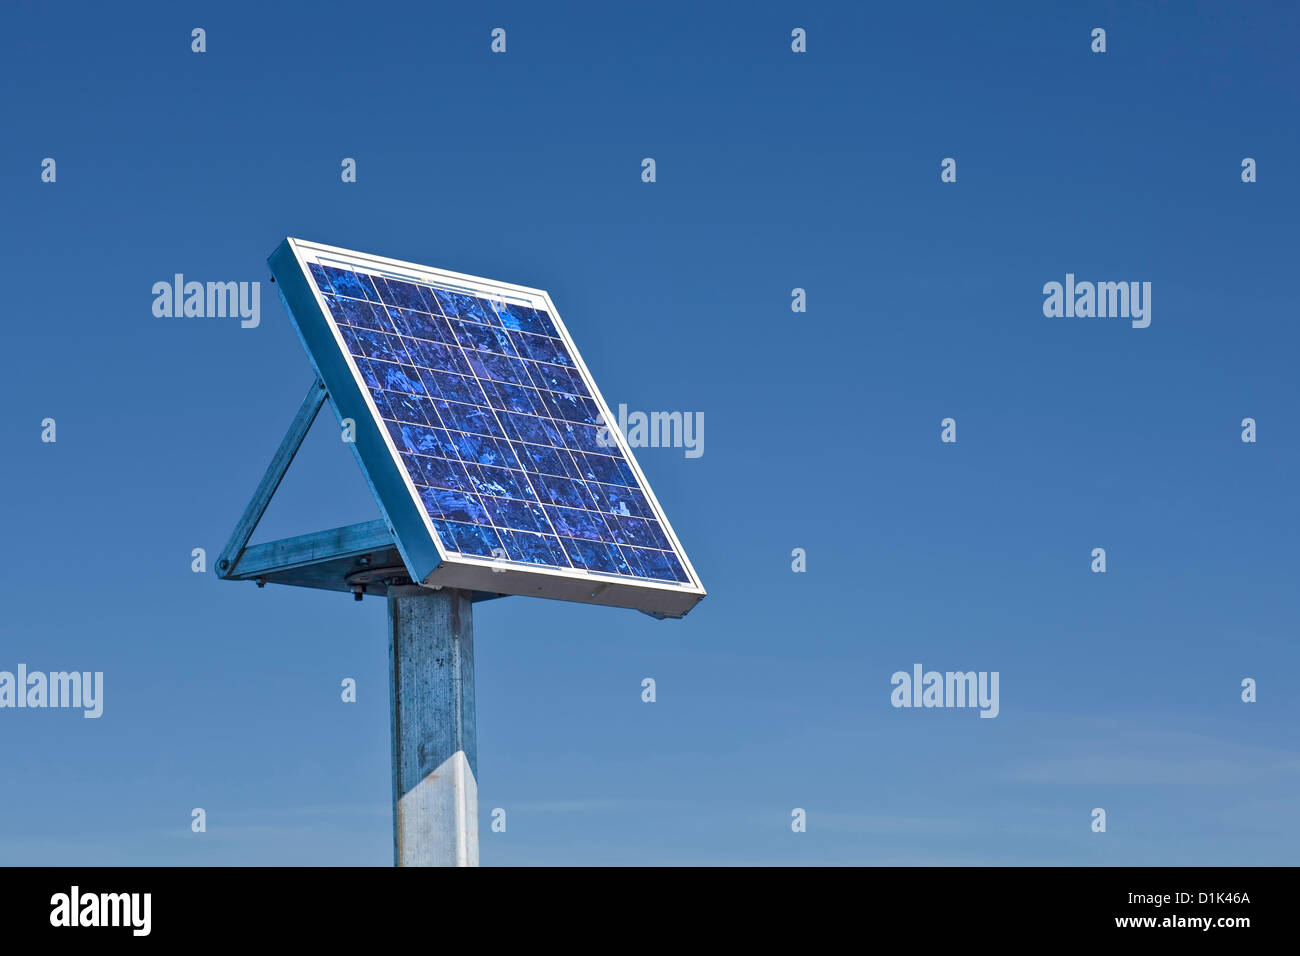 Small solar panel on the side of a bridge. - Stock Image